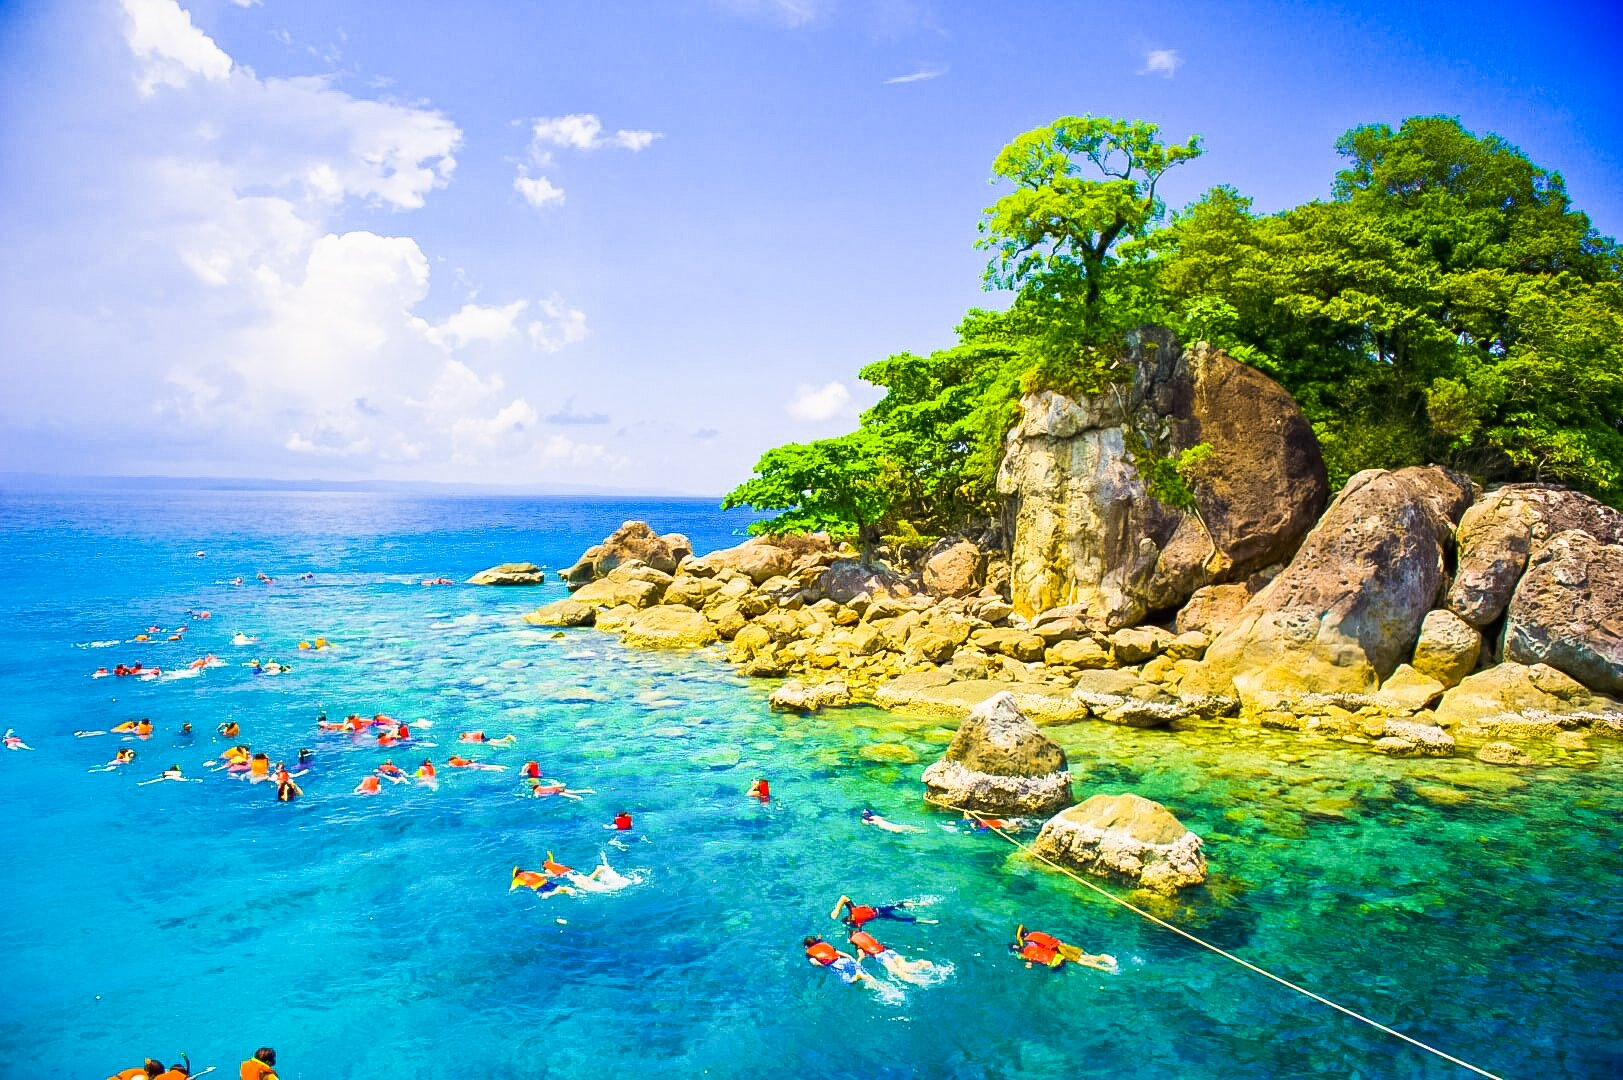 One of the largest Island in Thailand Koh Chang famous snorkeling.